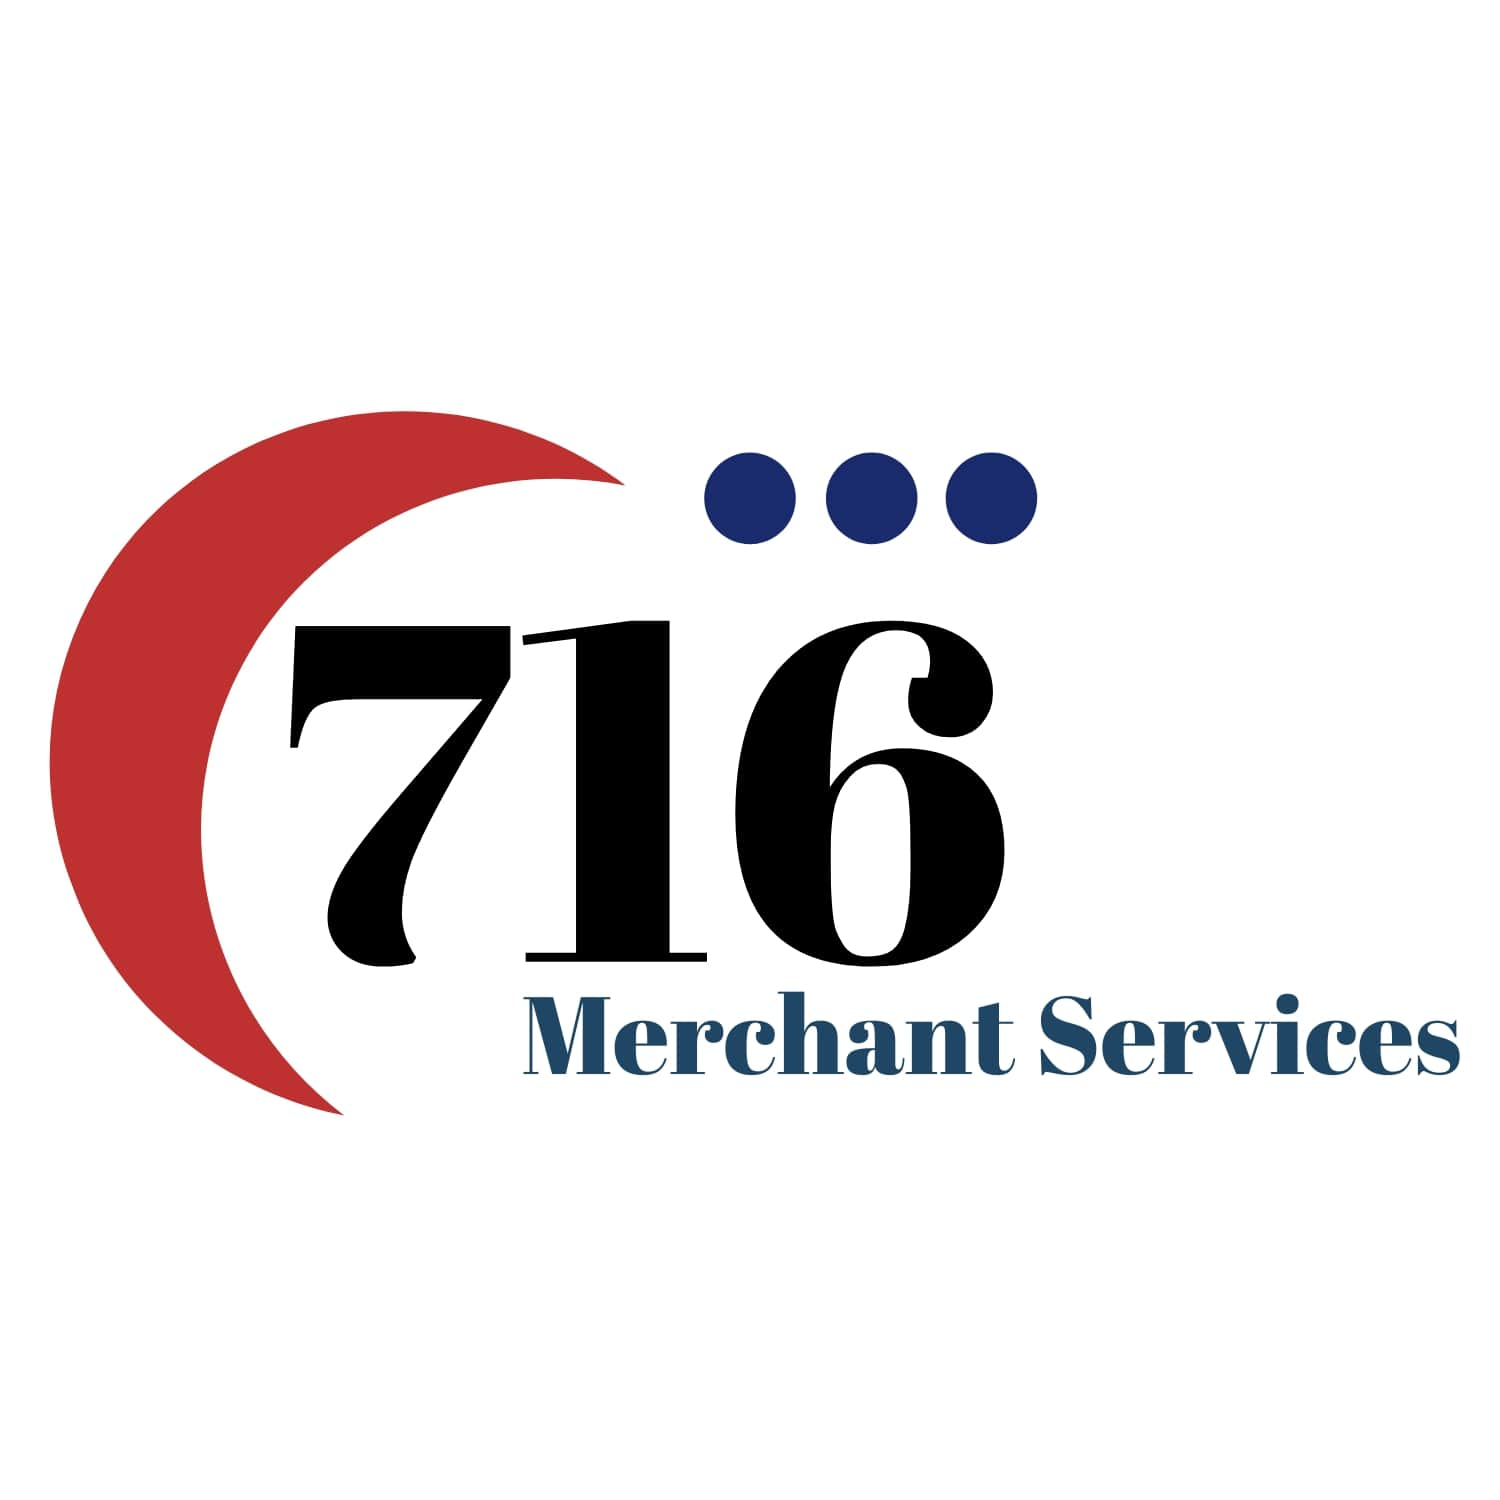 716 Merchant Services logo